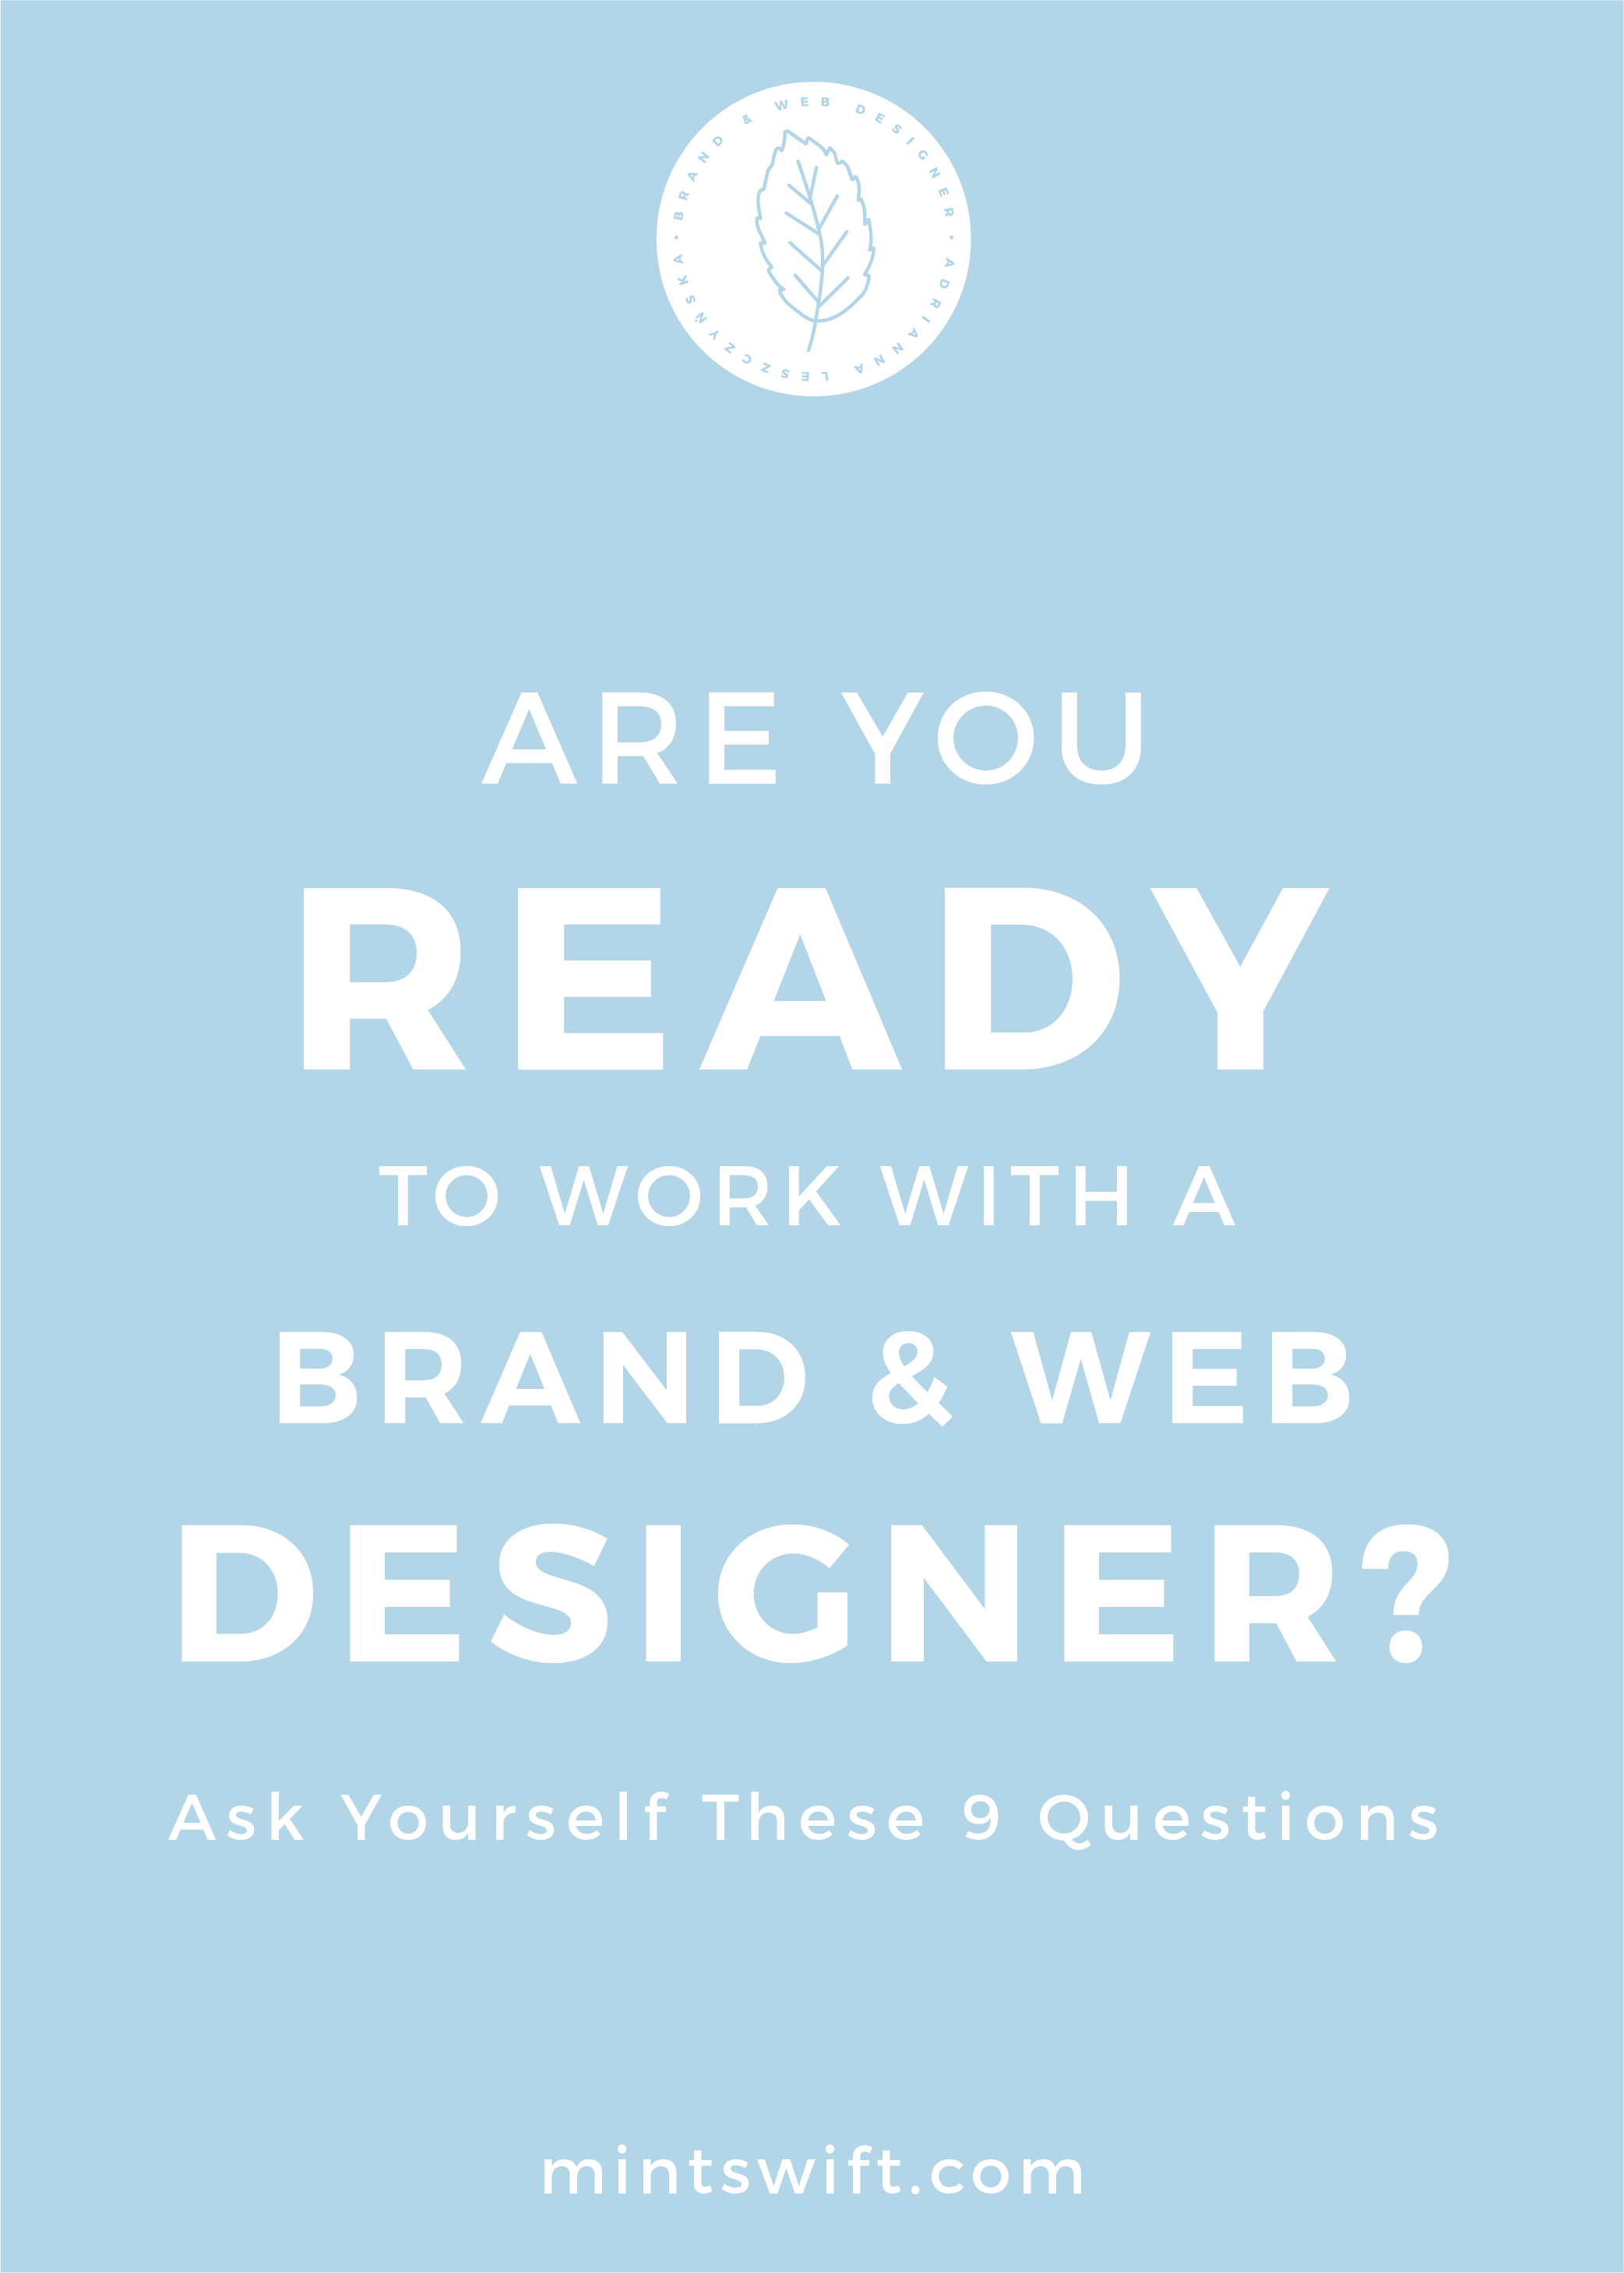 Are You Ready to Work With a Brand & Web Designer? Ask Yourself These 9 Questions